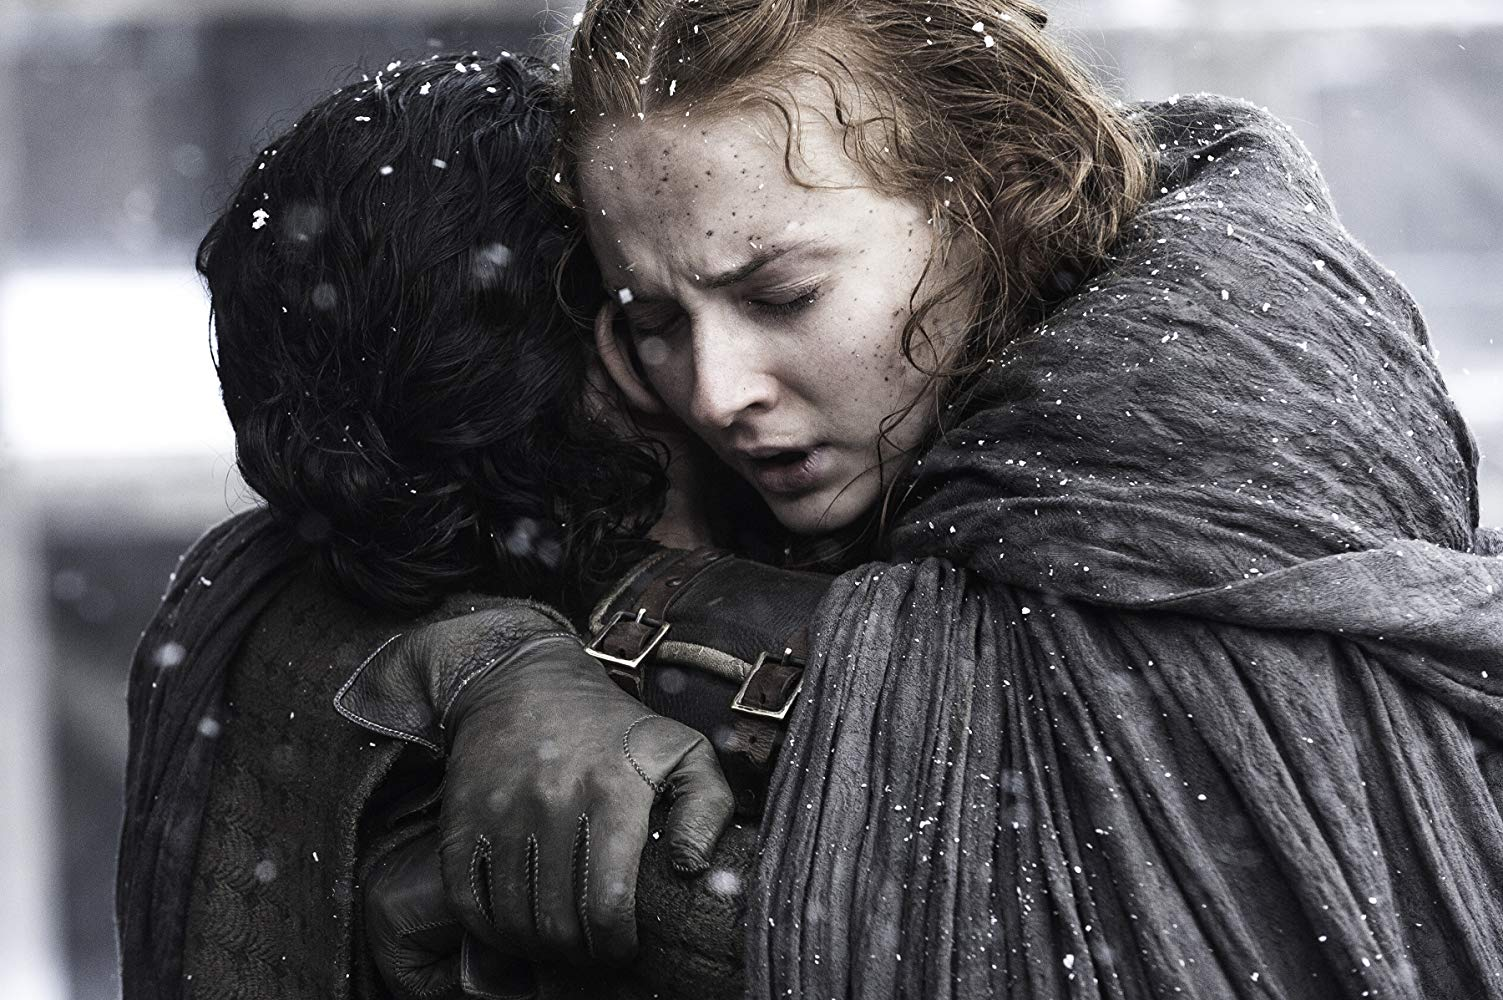 Kit Harington (Jon Snow) and Sophie Turner (Sansa Stark) in Game of Thrones. Source: IMDB